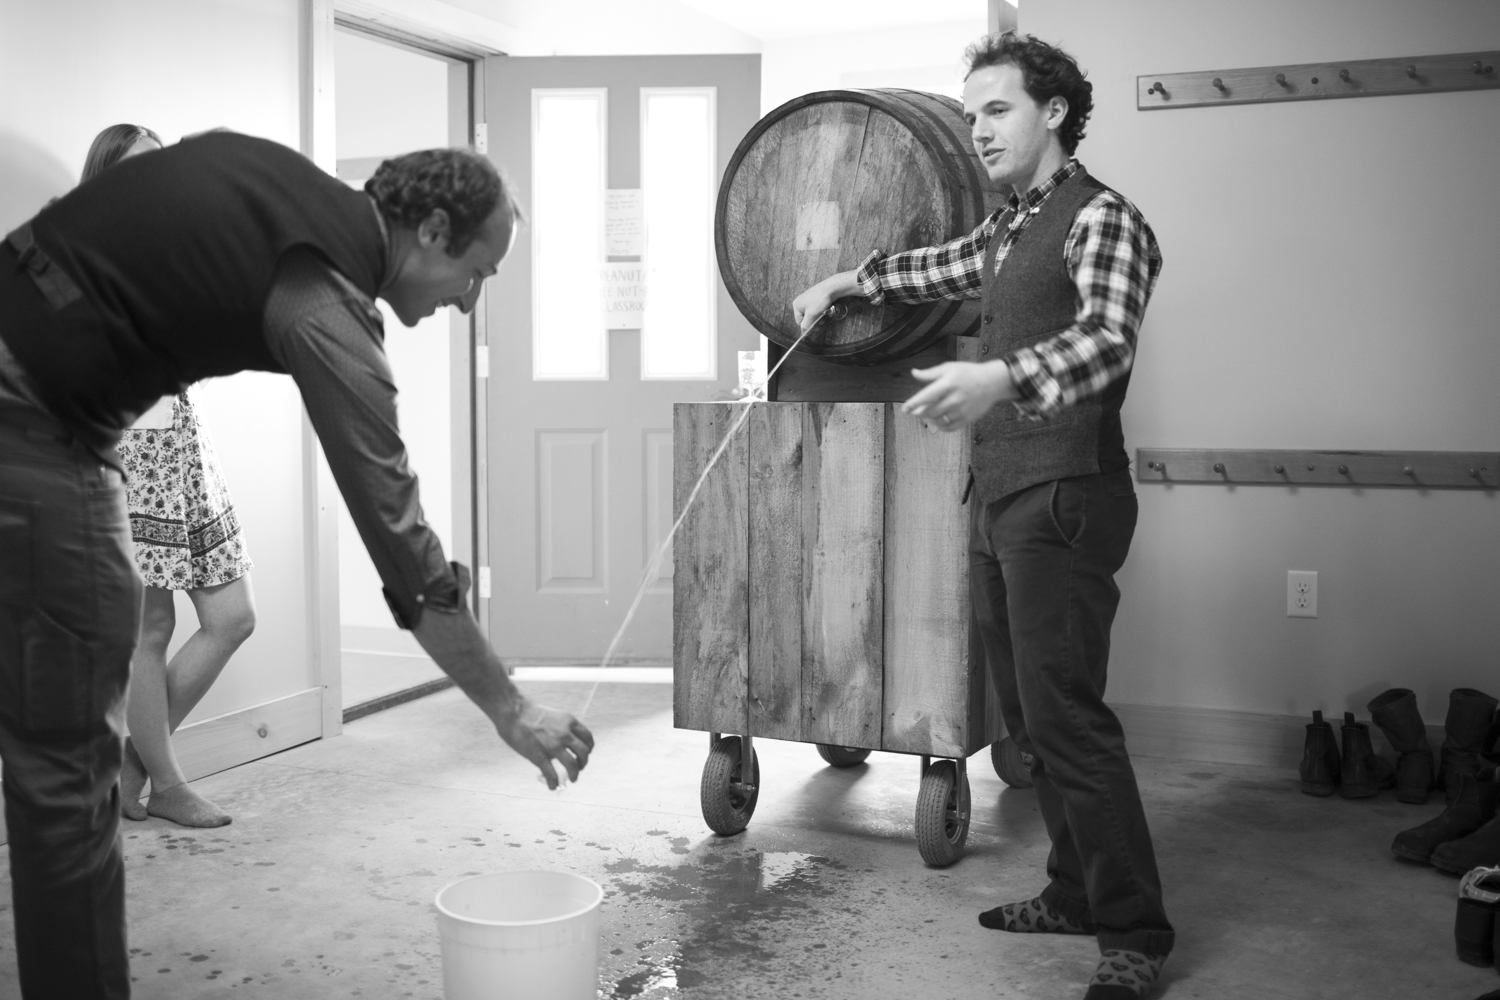 David Dolginow of Shacksbury Cider pours from the Basque barrel.